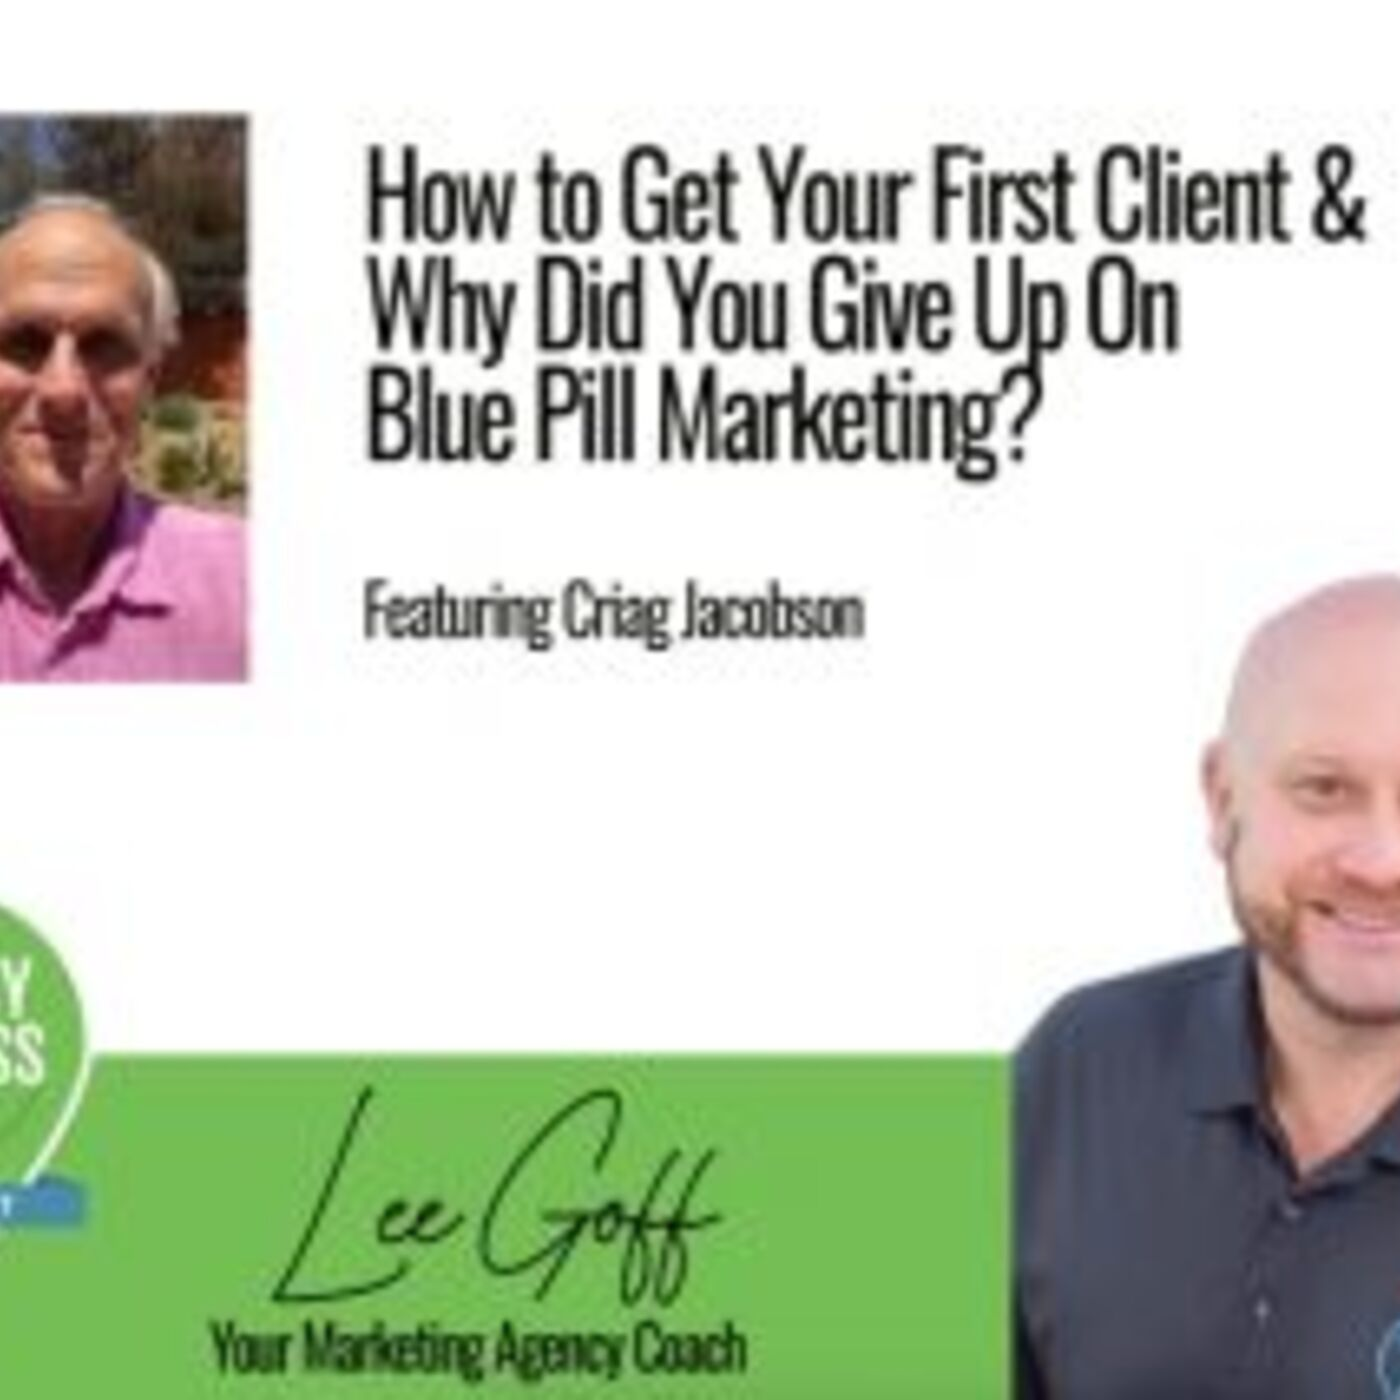 Craig Jacobson - How to Get Your First Clients When You're Starting an Agency or Dramatically Increase The Growth of Your Agency - Agency Success GPS Podcast - Lee Goff - Episode 7